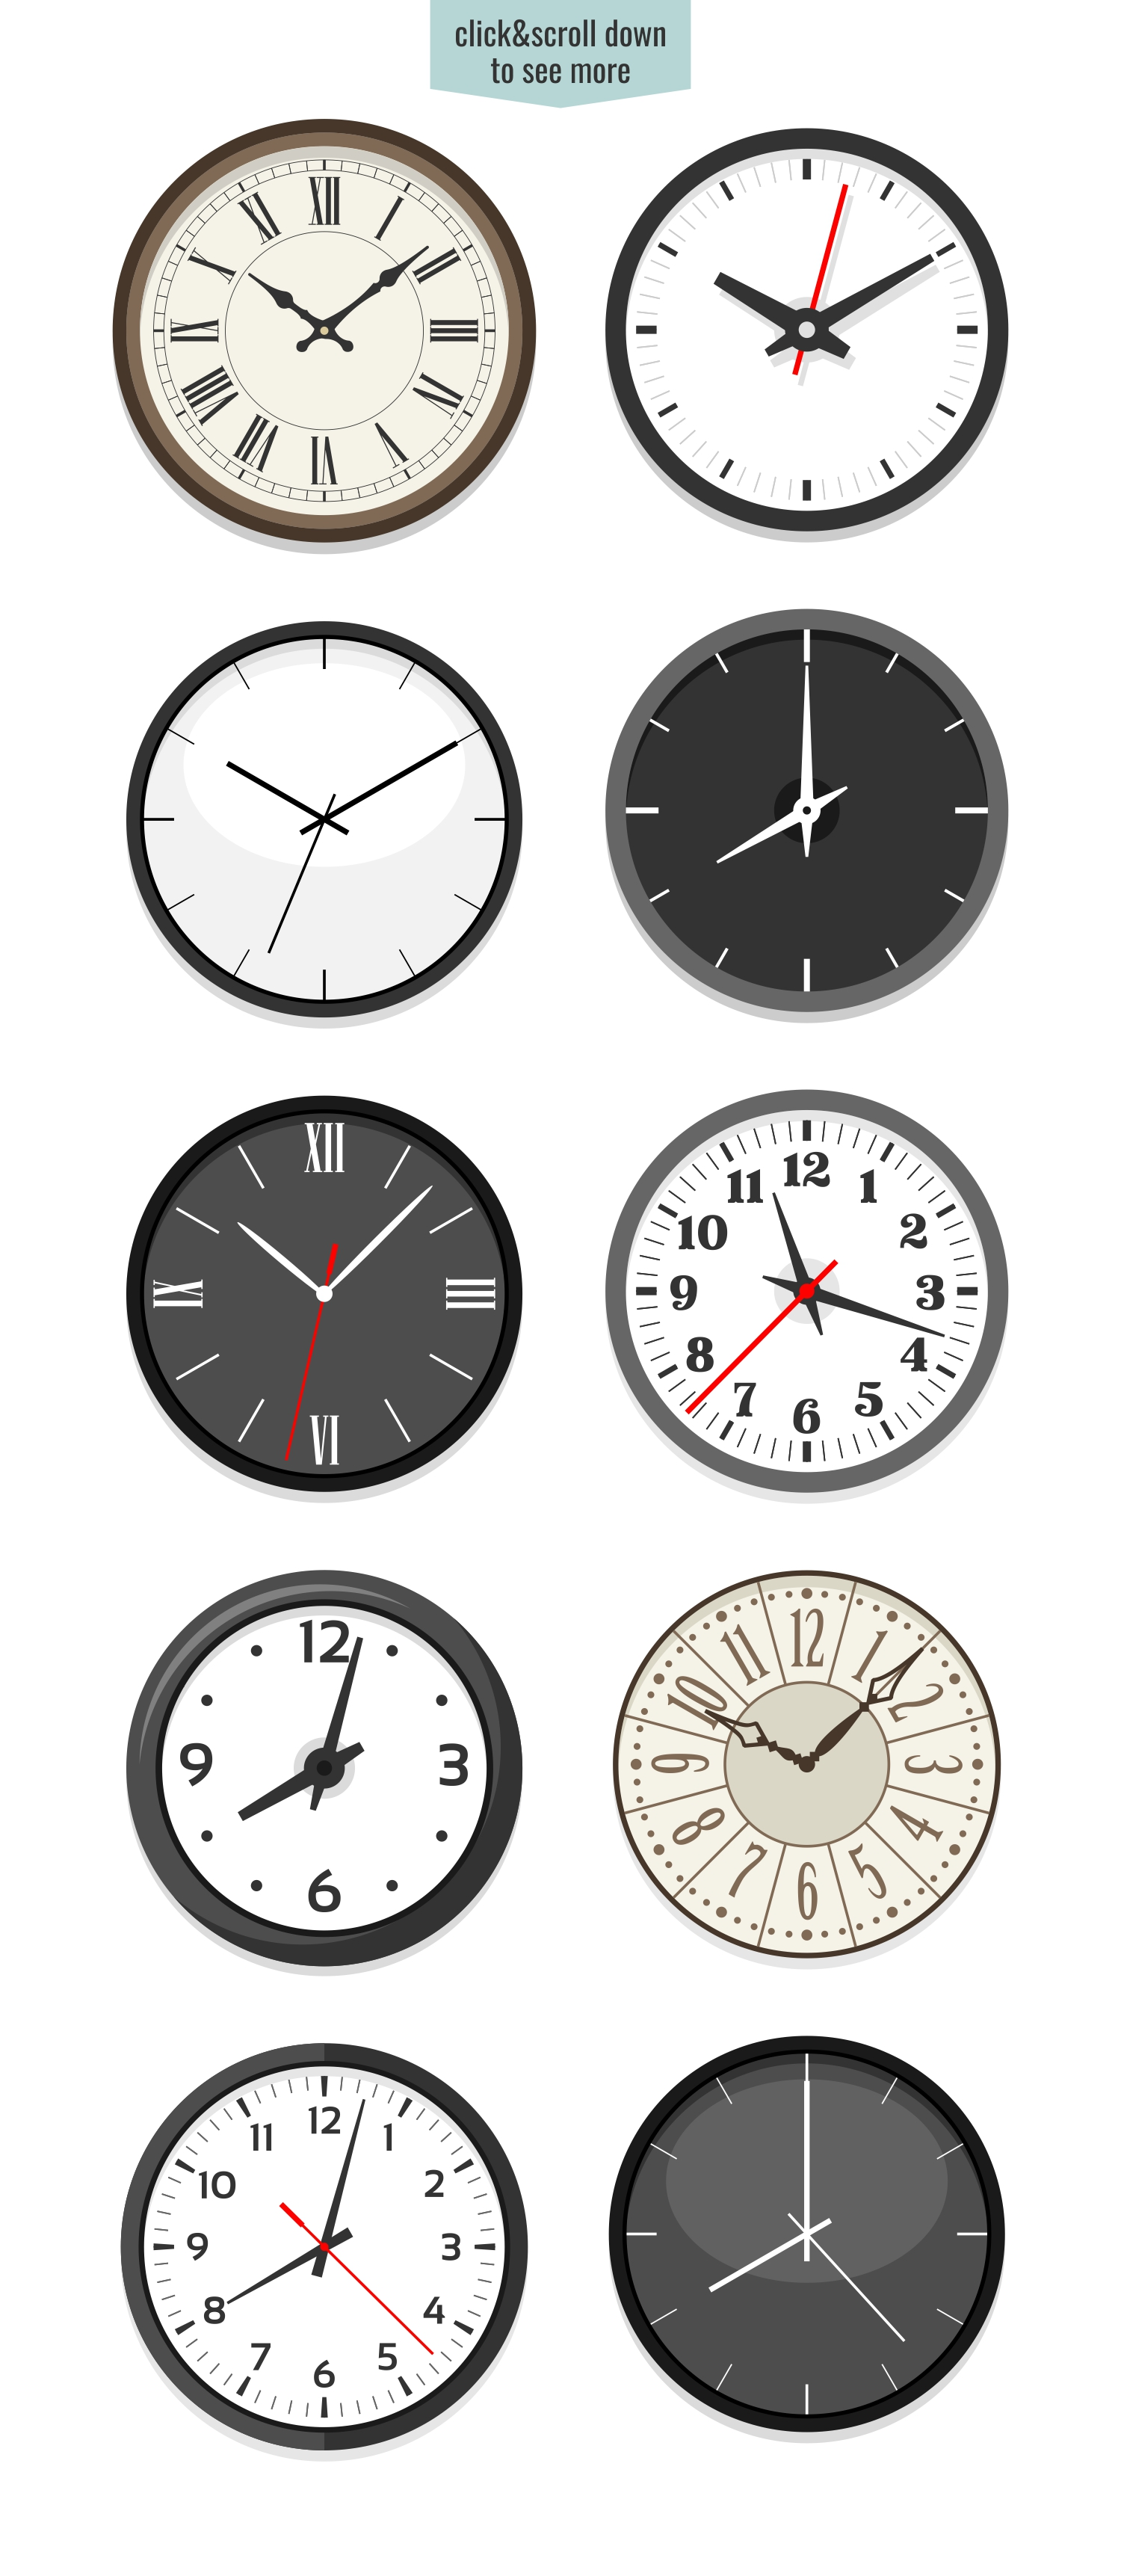 10 clock face illustrations example image 2